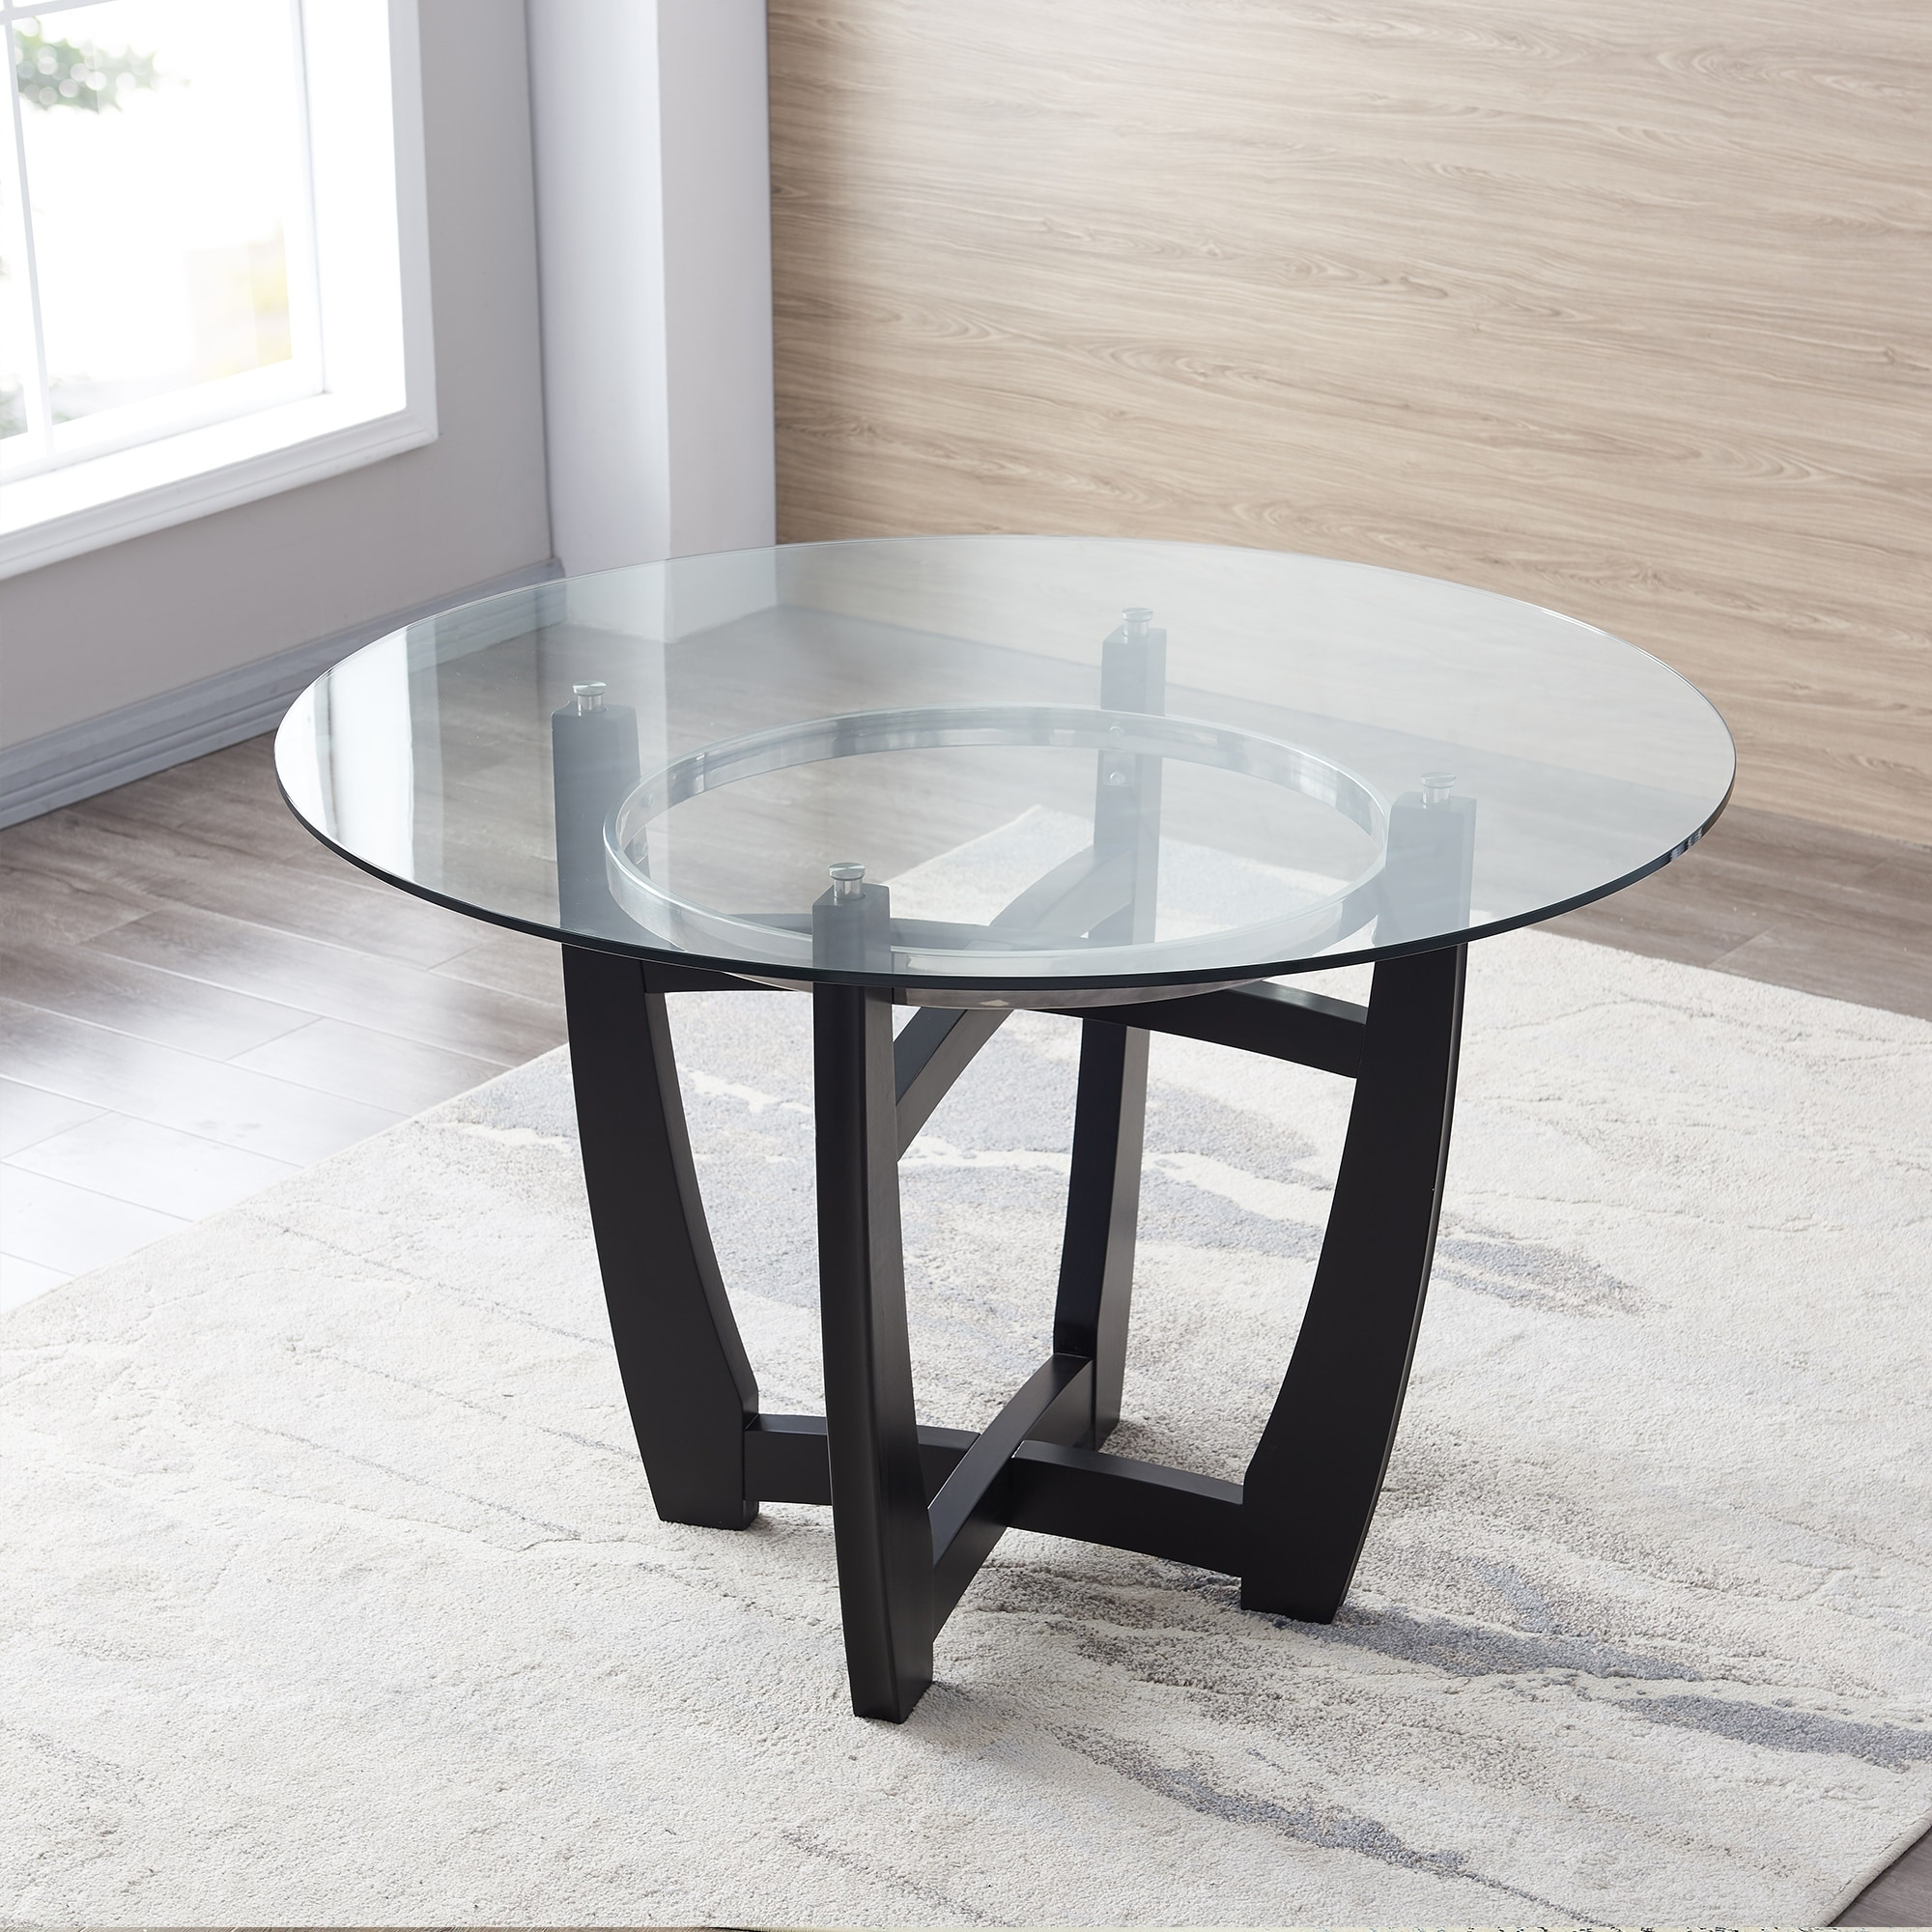 48 Inch Round Glass Top Dining Table On Sale Overstock 32339310